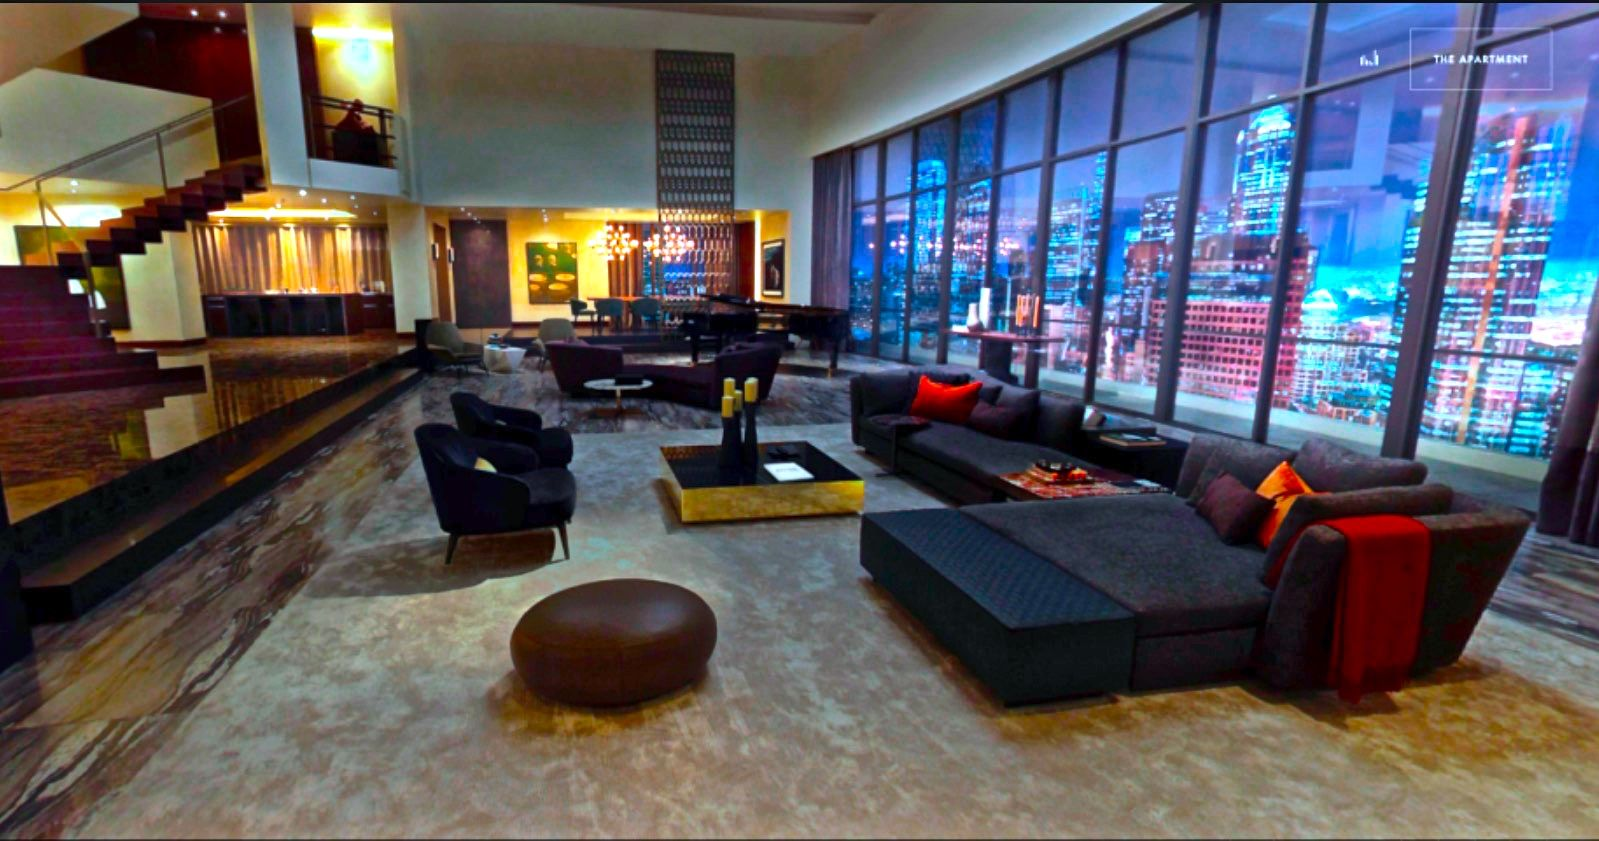 Fifty Shades Darker Furniture And Decor Part 1 Set Decorator Cal Loucks Reveals Christian Grey S Taste In Exclusive Detail Film And Furniture Dark Furniture Furniture Fifty Shades Darker